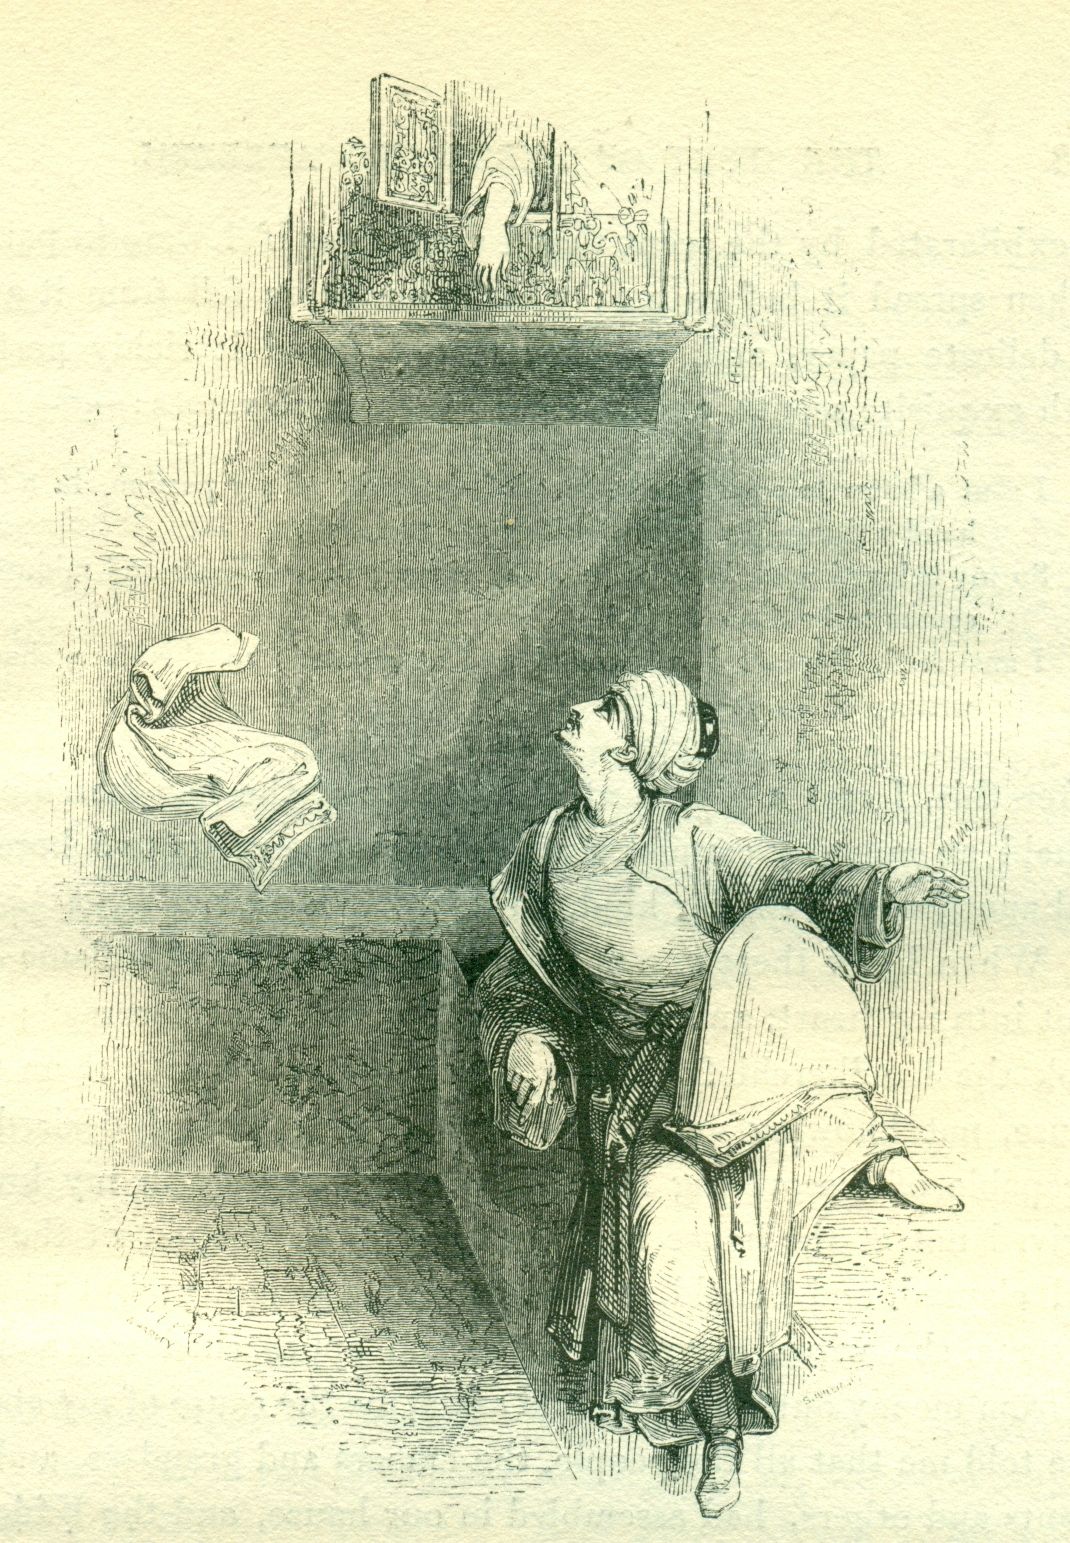 The Daughter of Delilah The Wily, and Aziz - Illustration by William Harvey